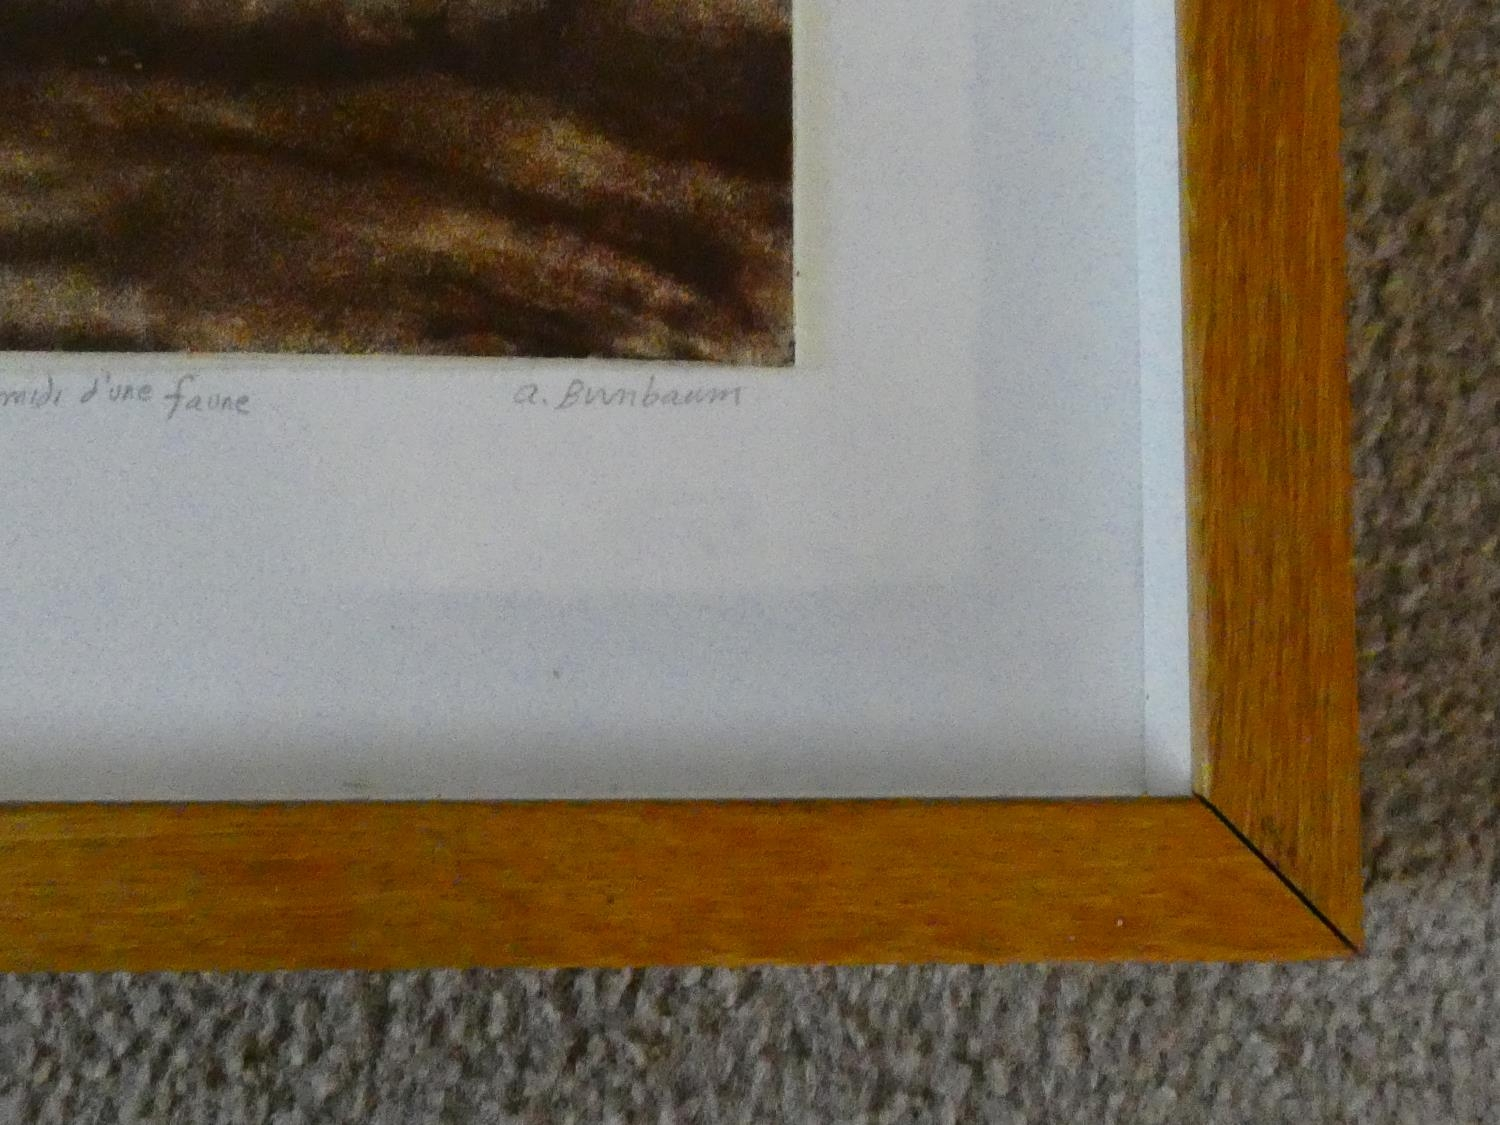 A framed and glazed limited signed artist's proof etching by American artist Aimee Birnbaum, - Image 6 of 7